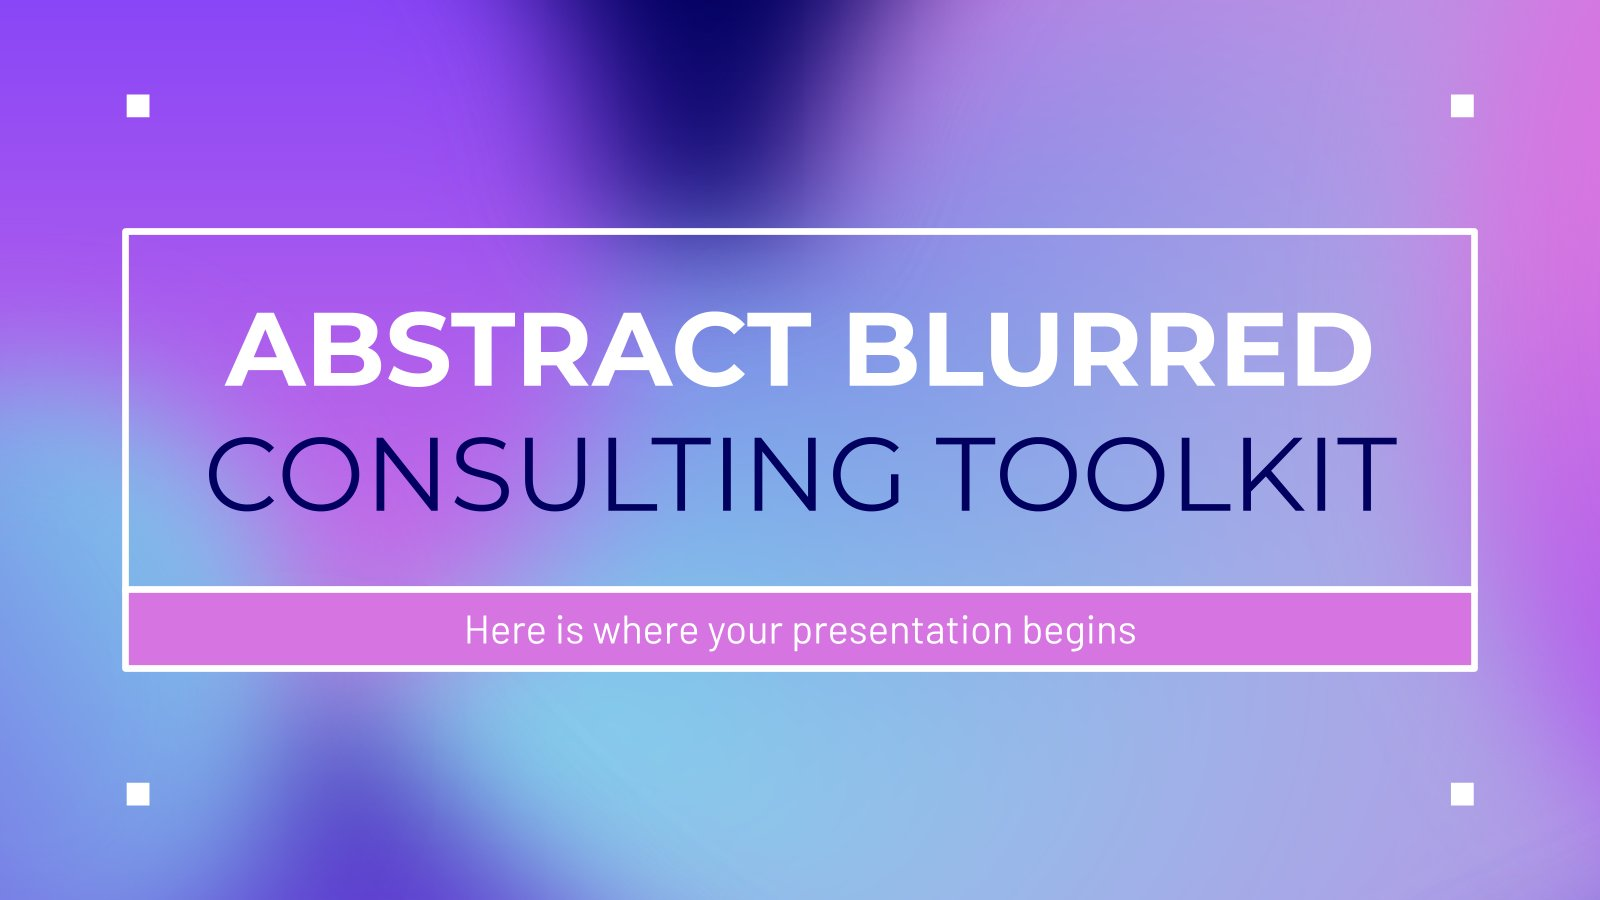 Abstract Blurred Consulting Toolkit presentation template